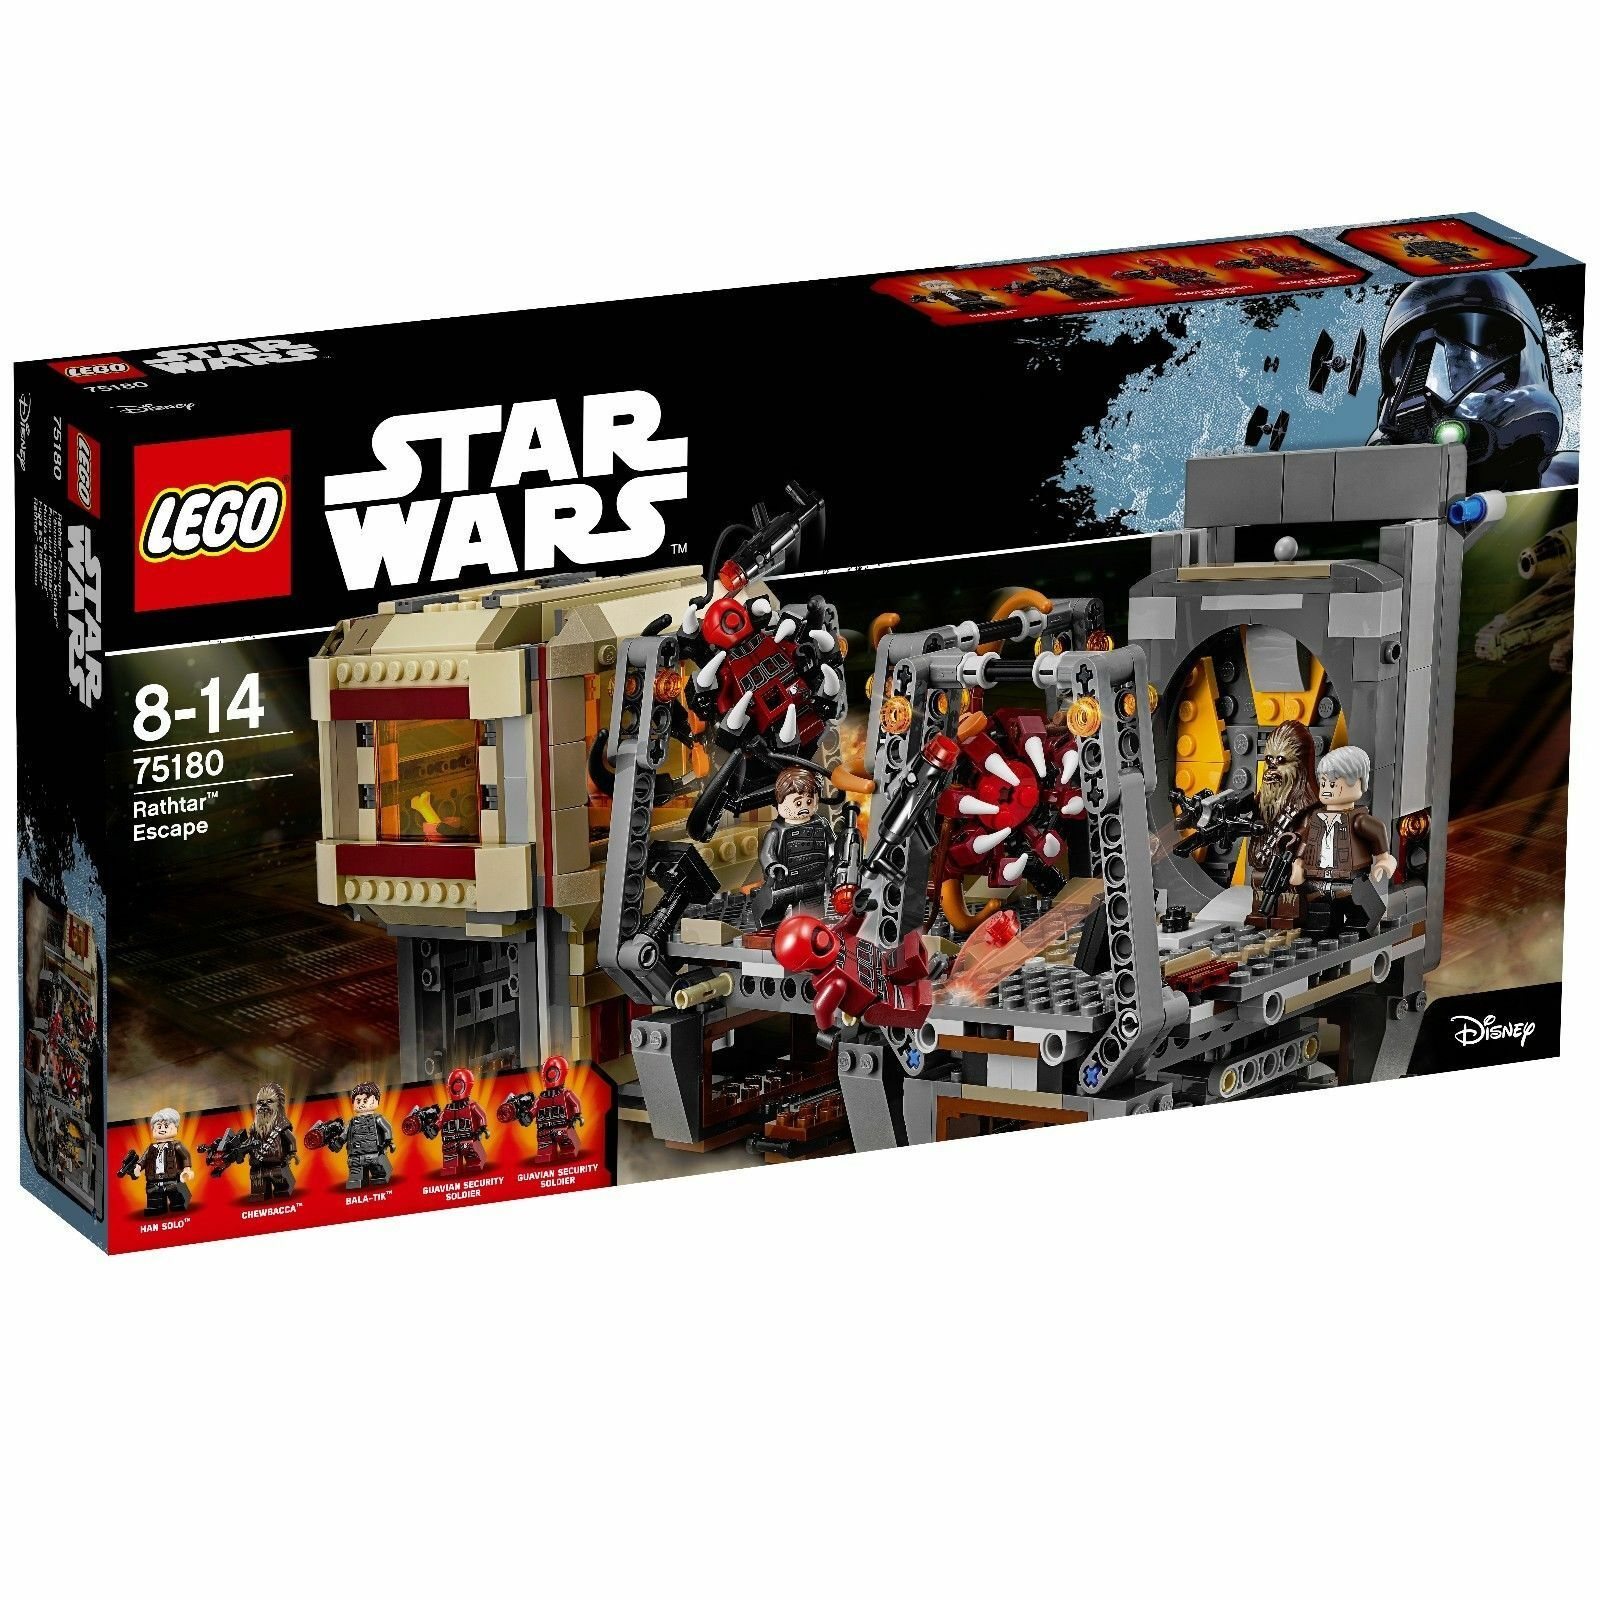 LEGO 75180 Star Wars Rathtar Escape 2017